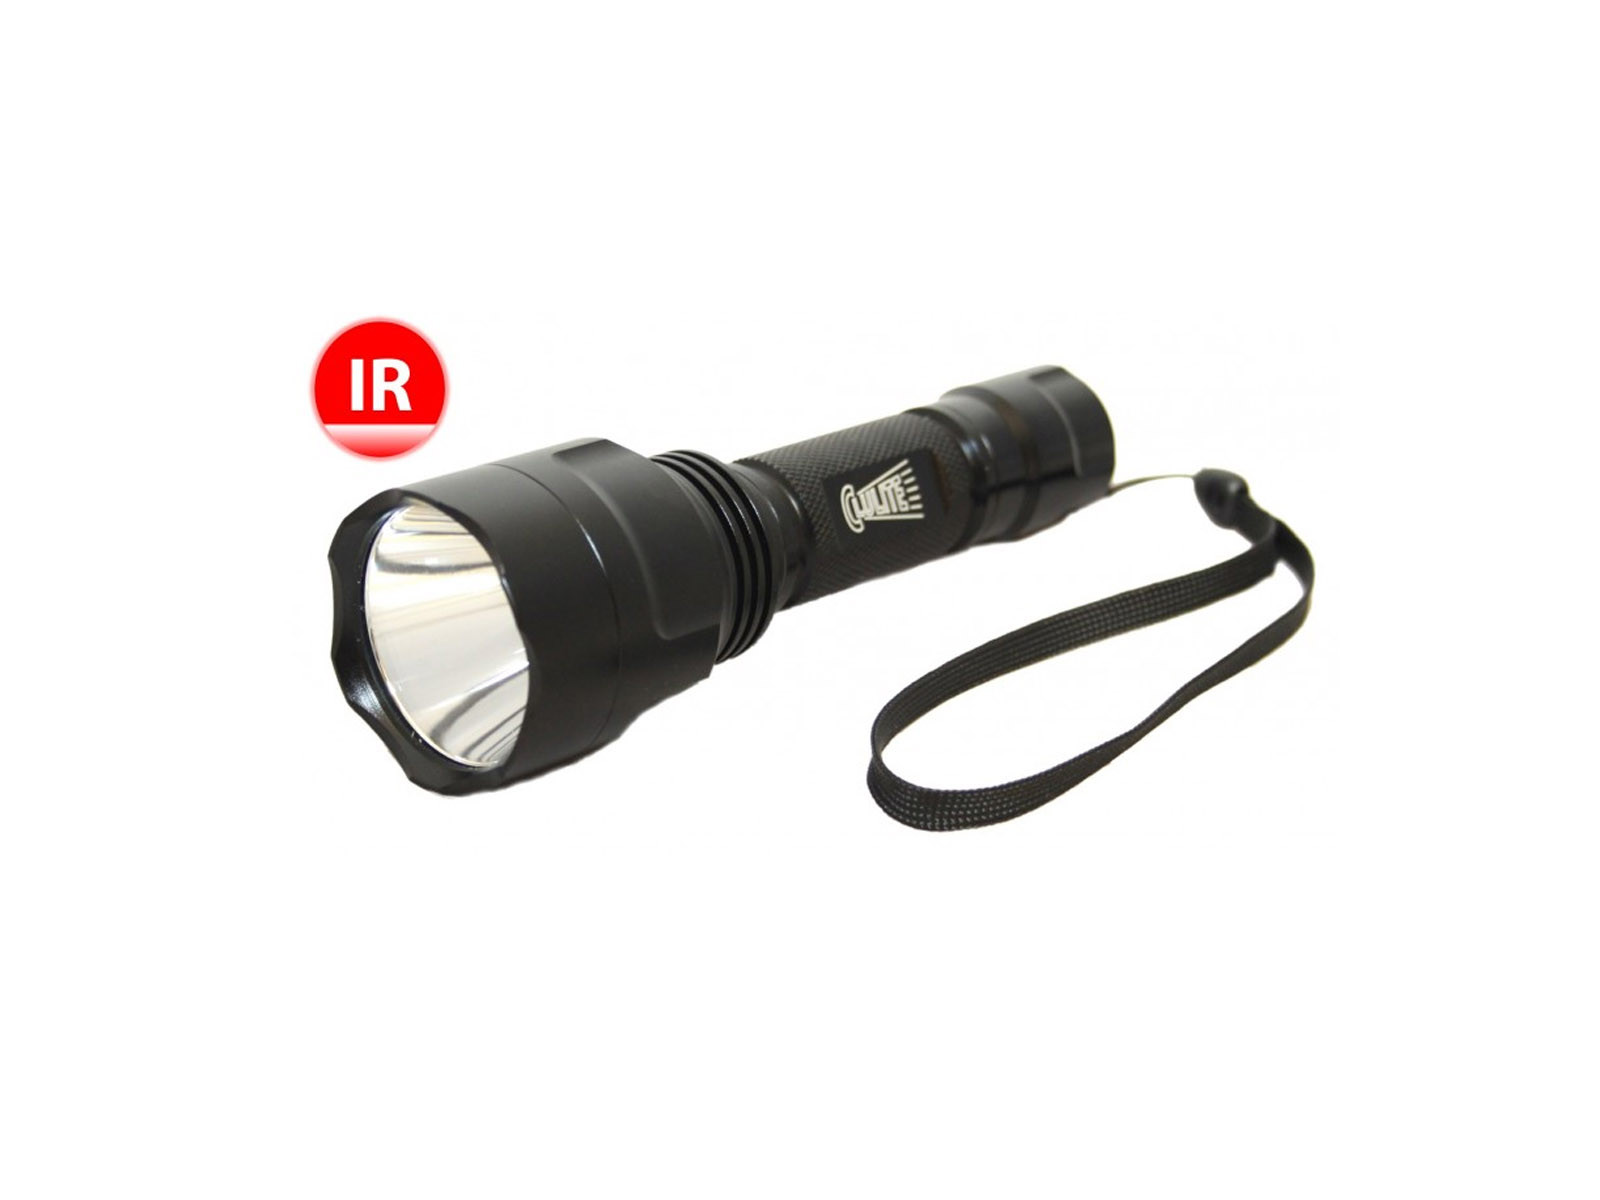 Clulite Sneakybeam IR Torch